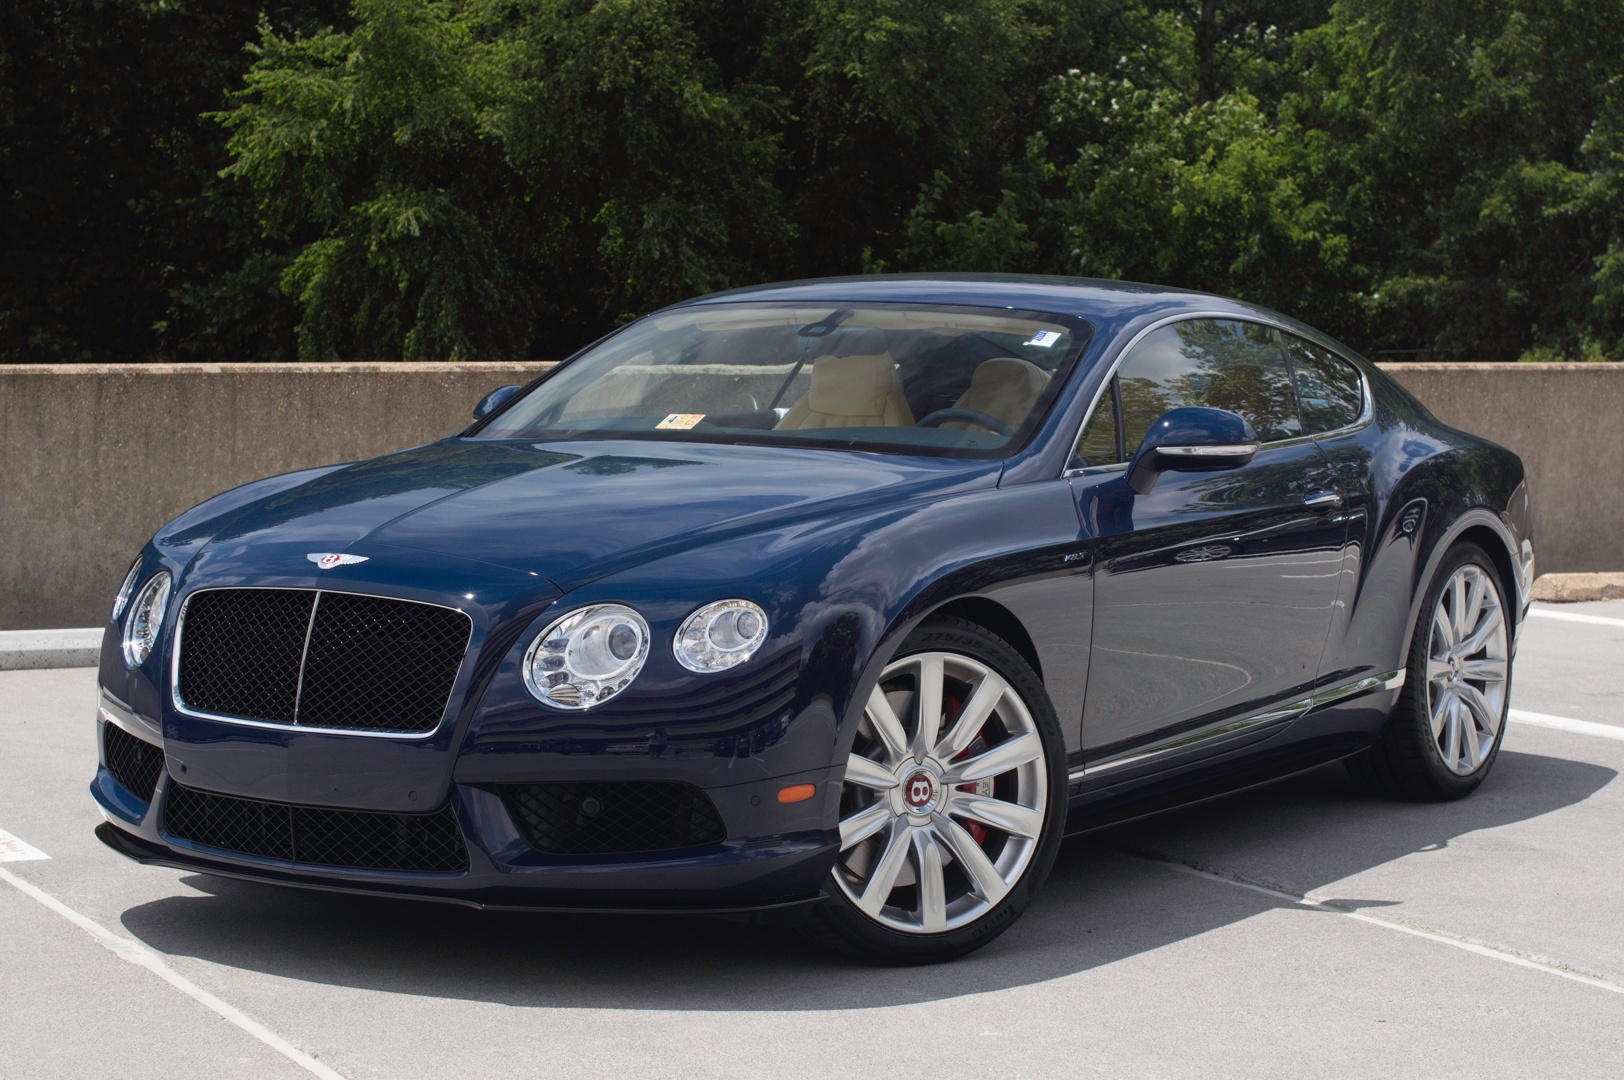 2014 Bentley Continental Gt V8 S Stock 4nc096190 For